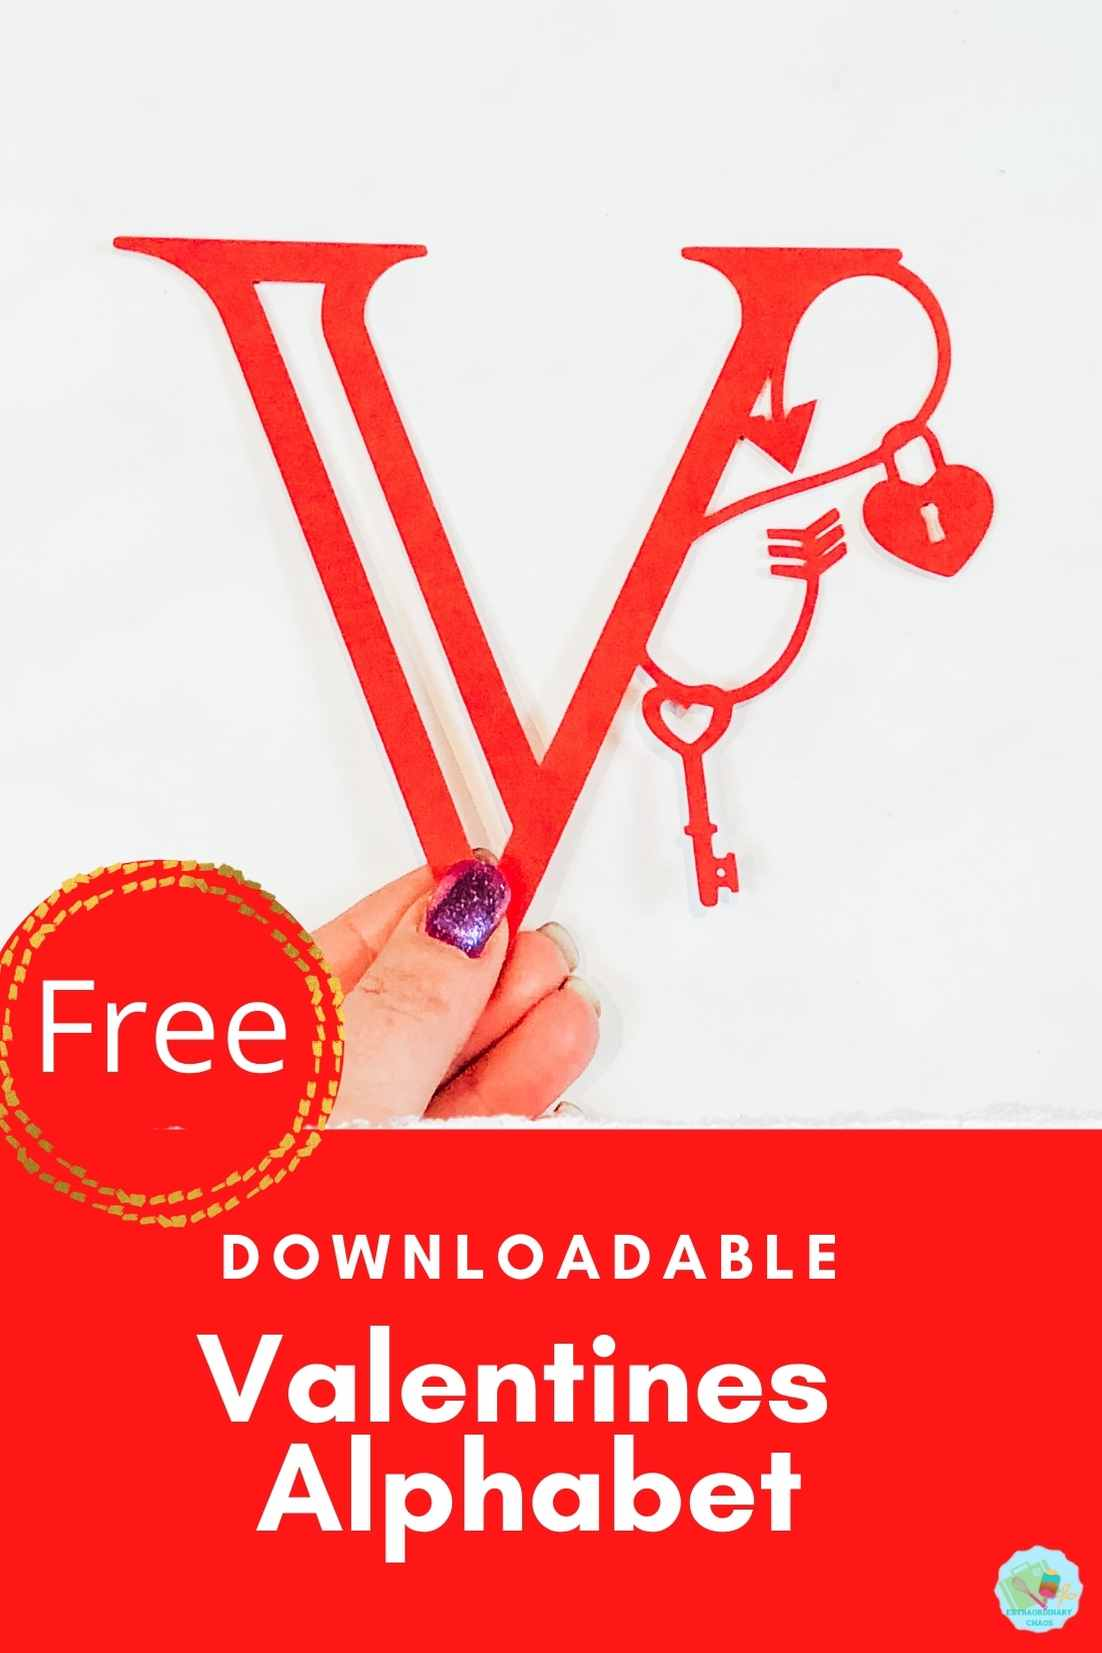 Free Downloadable Valentines Alphabet for crafting on Cricut and Silhouette